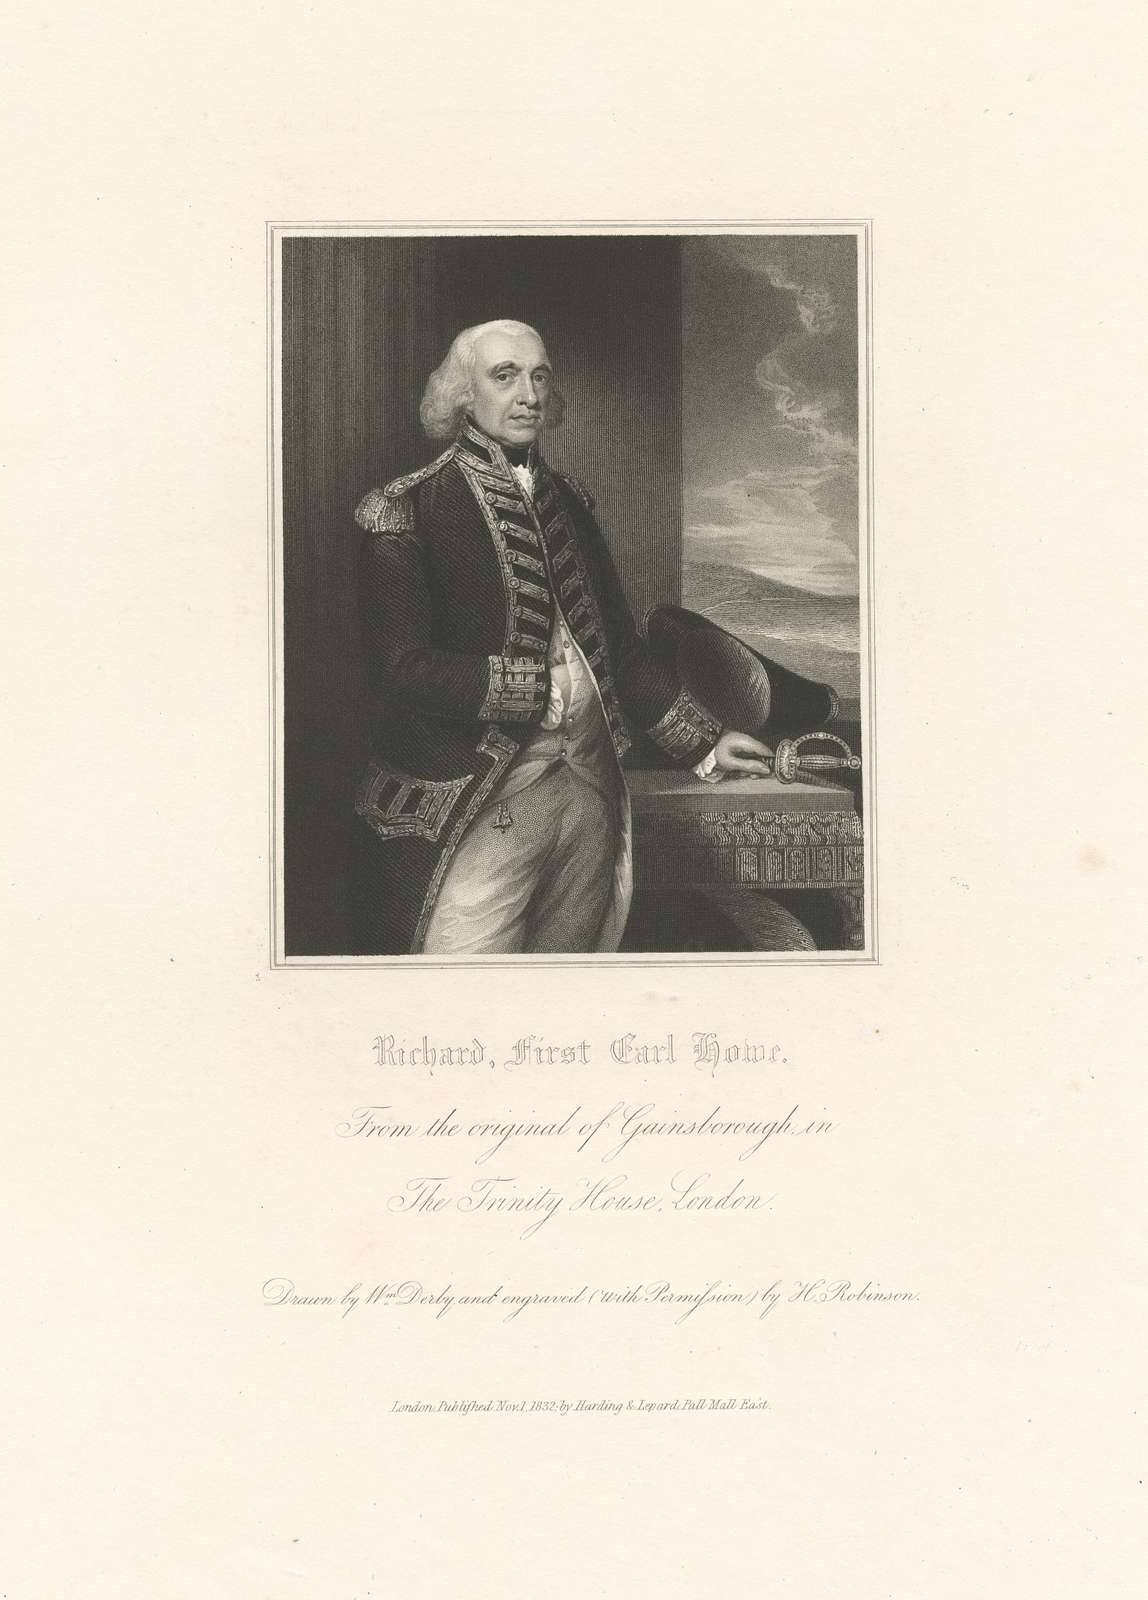 Richard, First Lord Howe